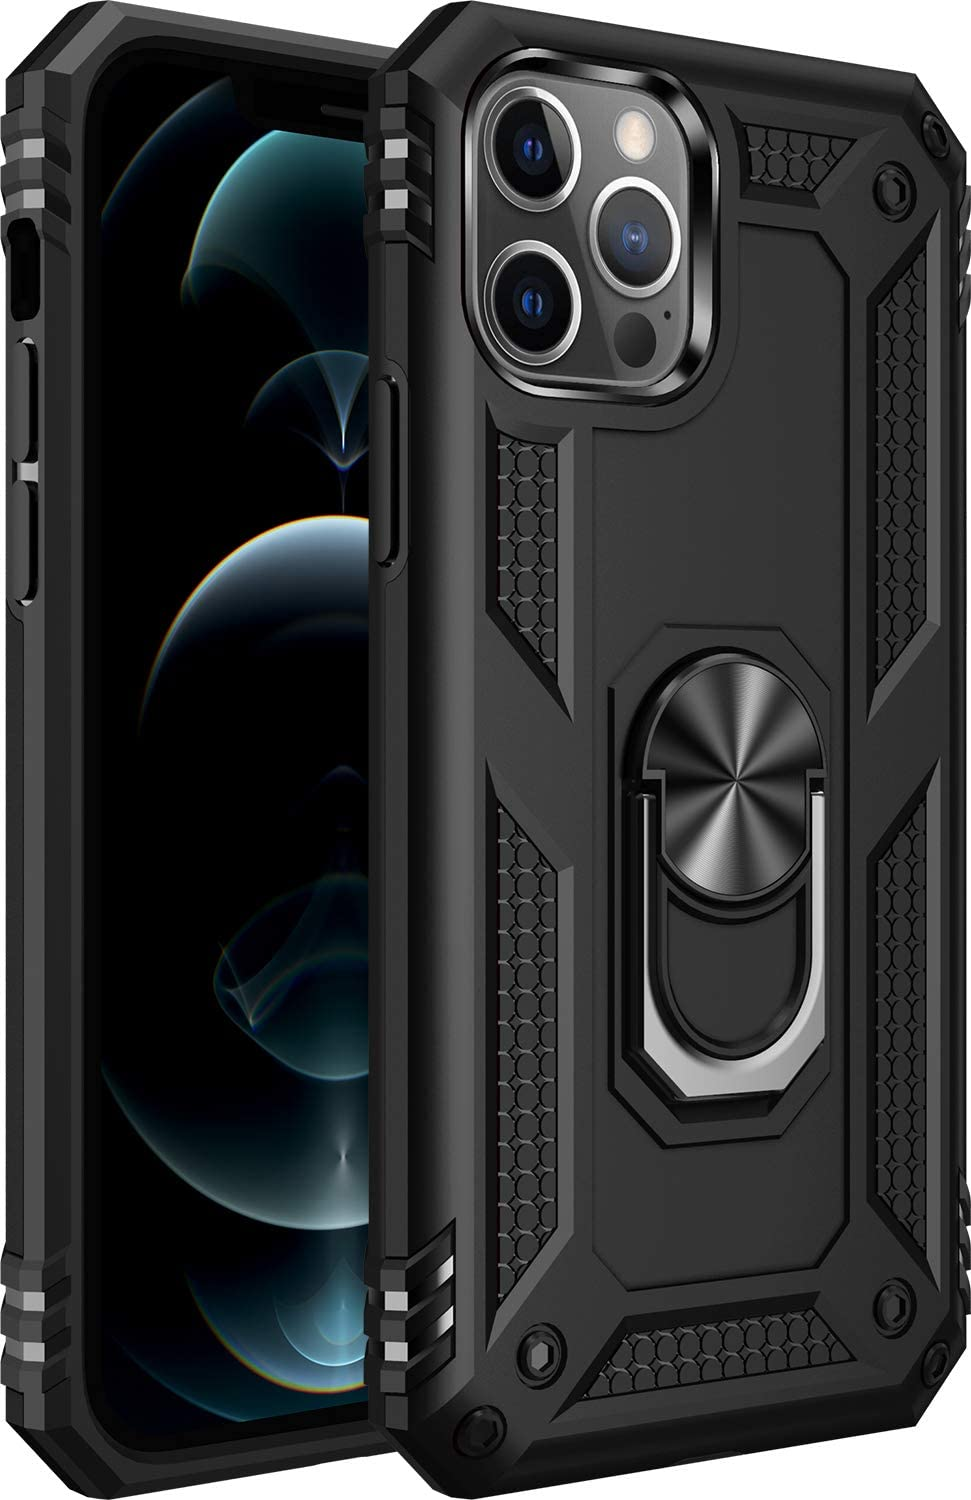 Amuoc Drop Tested Protective Case   Kickstand   6.1 Inch 2020-Black $5.06 Coupon